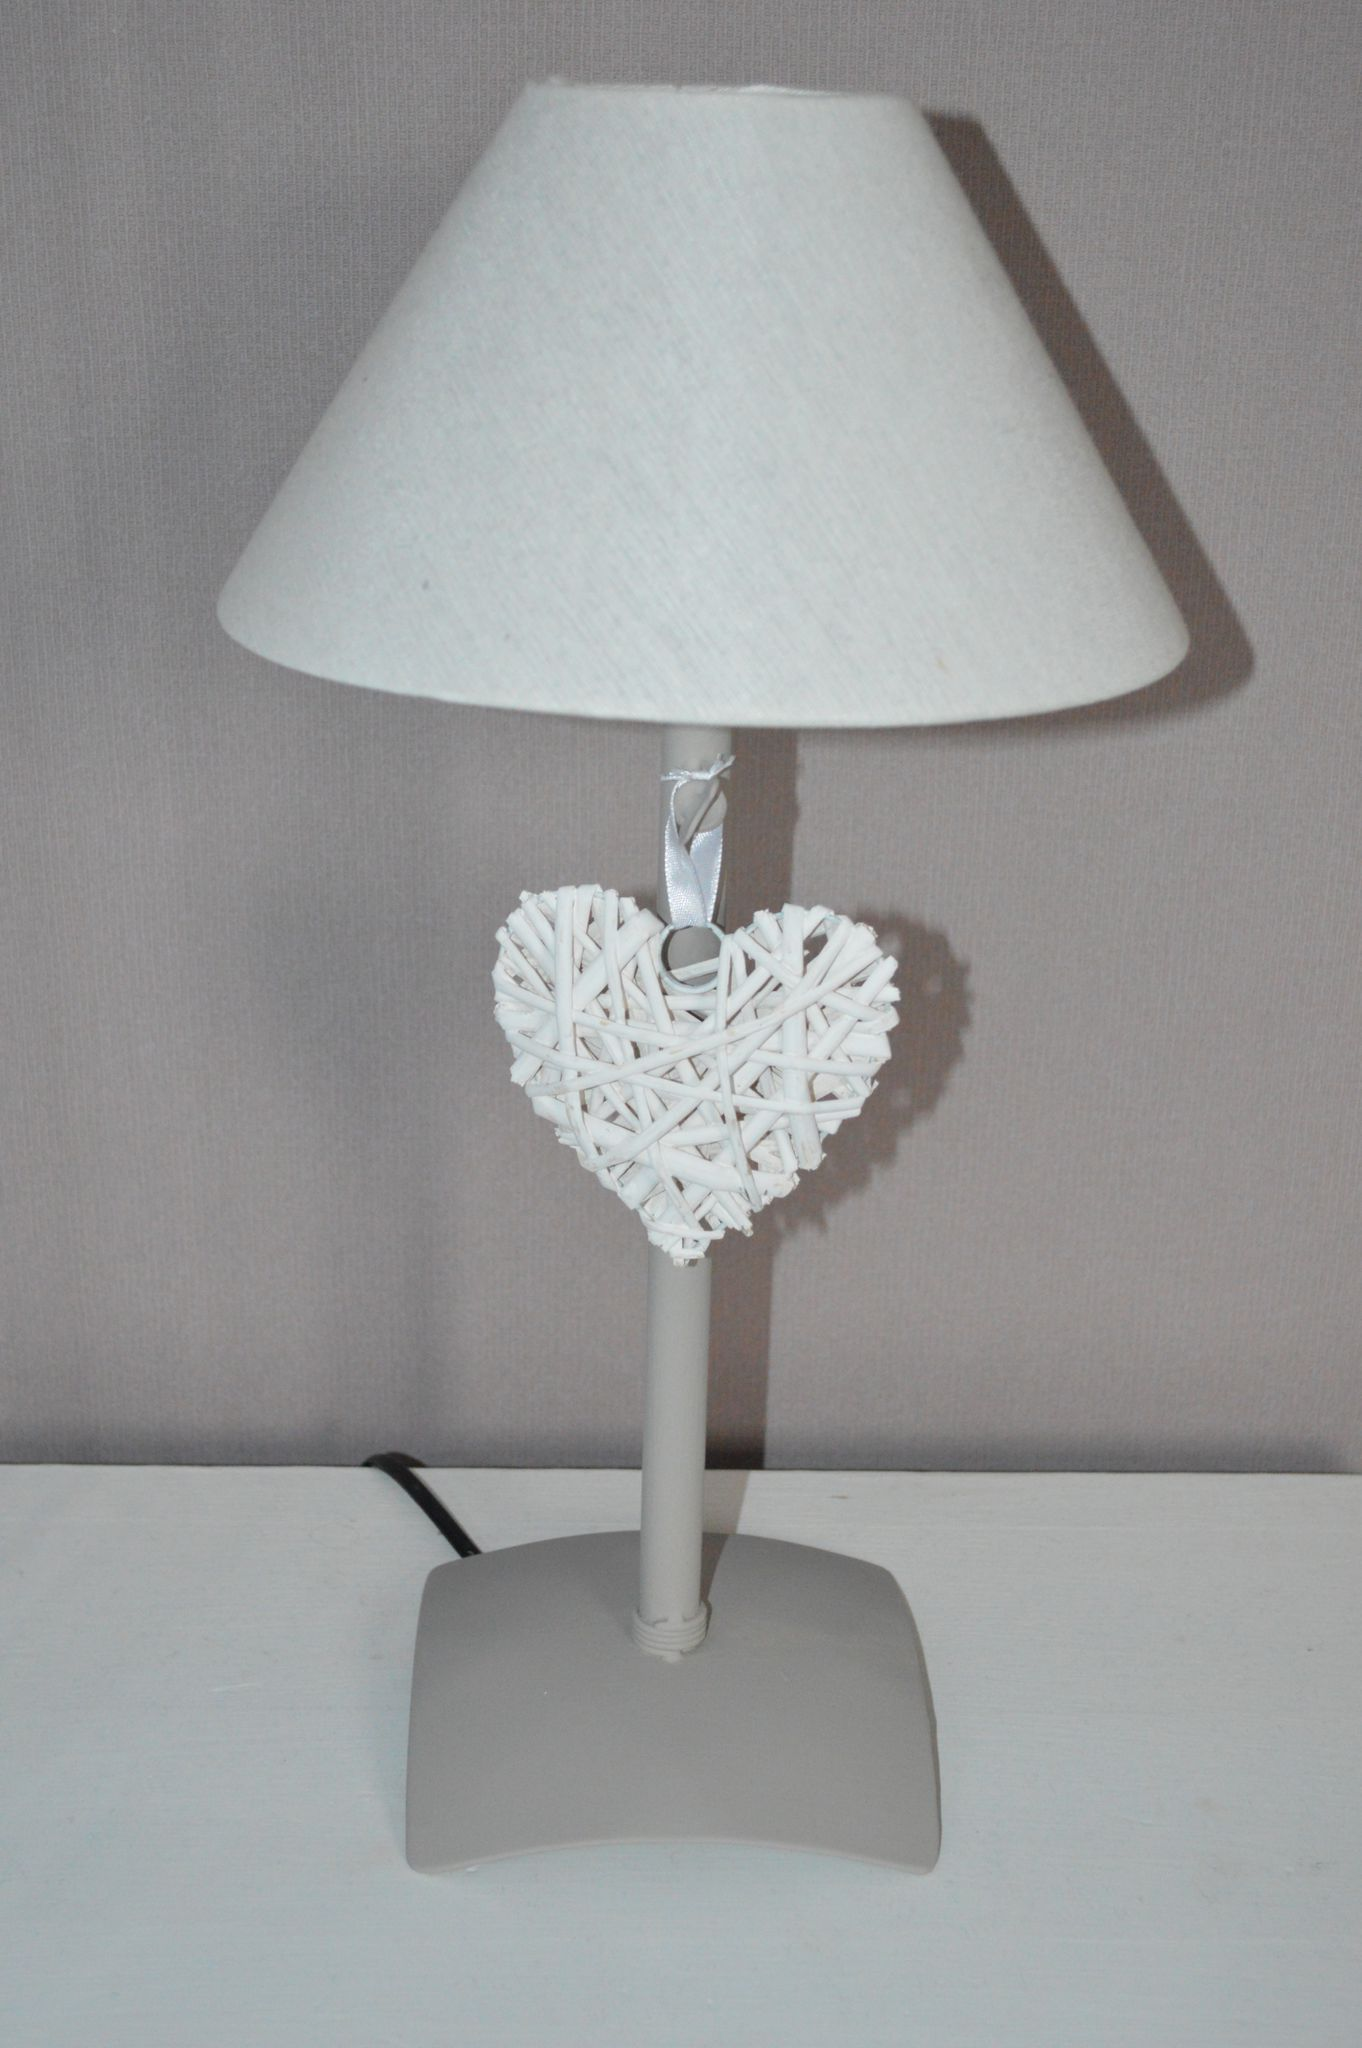 90263760 o 5 Incroyable Lampe Chevet Taupe Ksh4